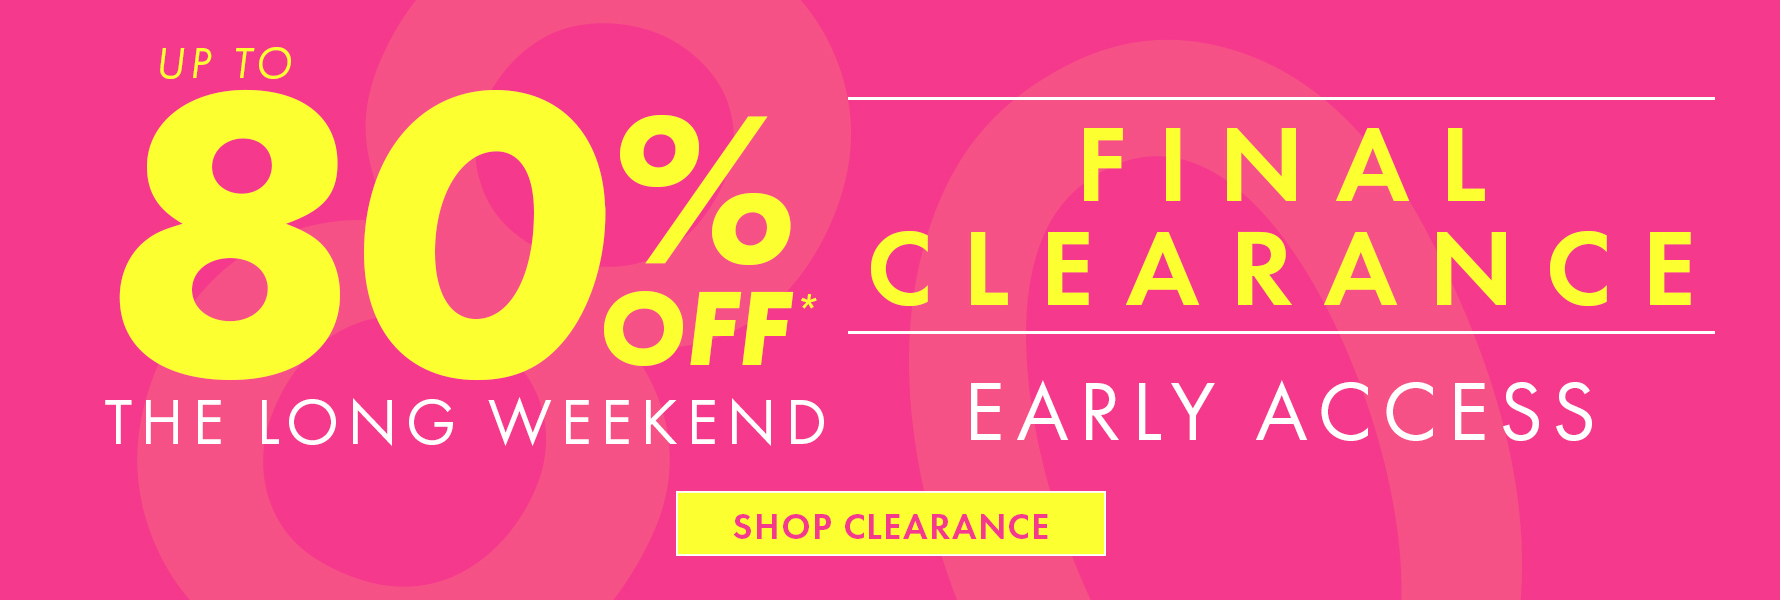 Shop Up To 80% Rockmans Final Clearance